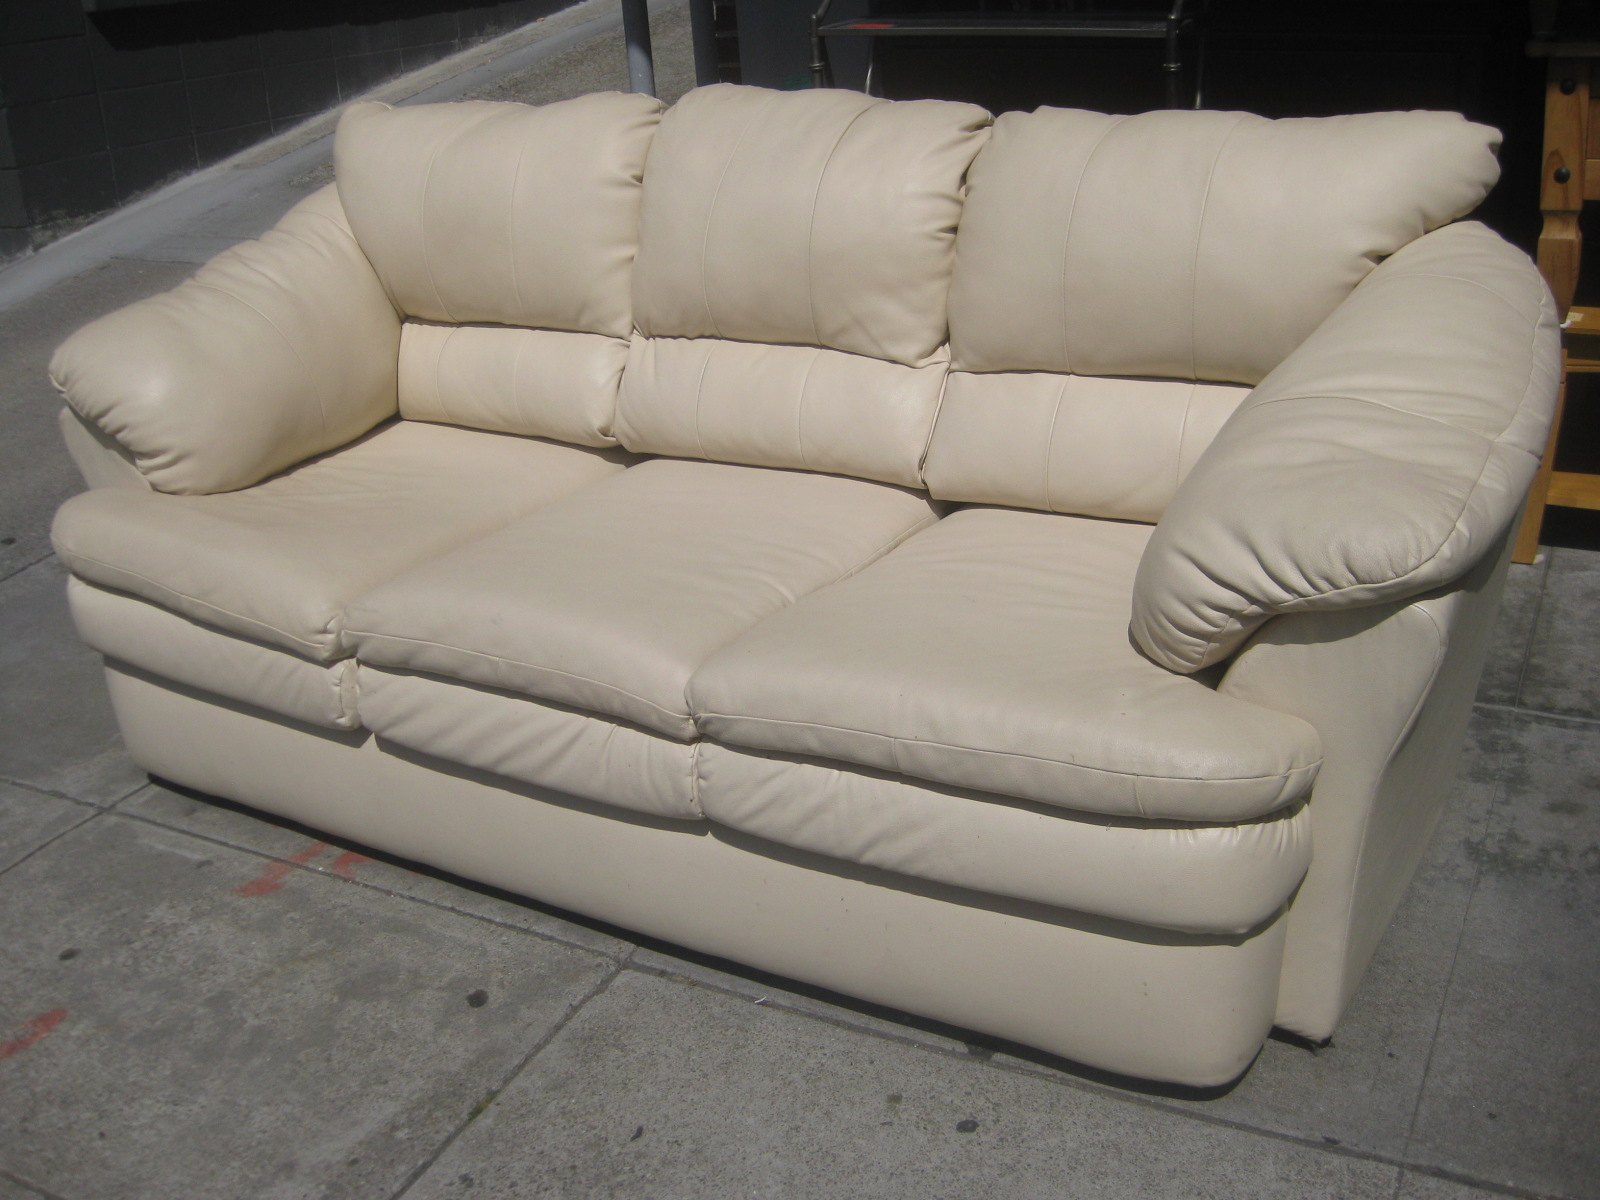 Easy To Clean White Leather Sofa Cheap Double Beds Under 100 Chaviano Steal A